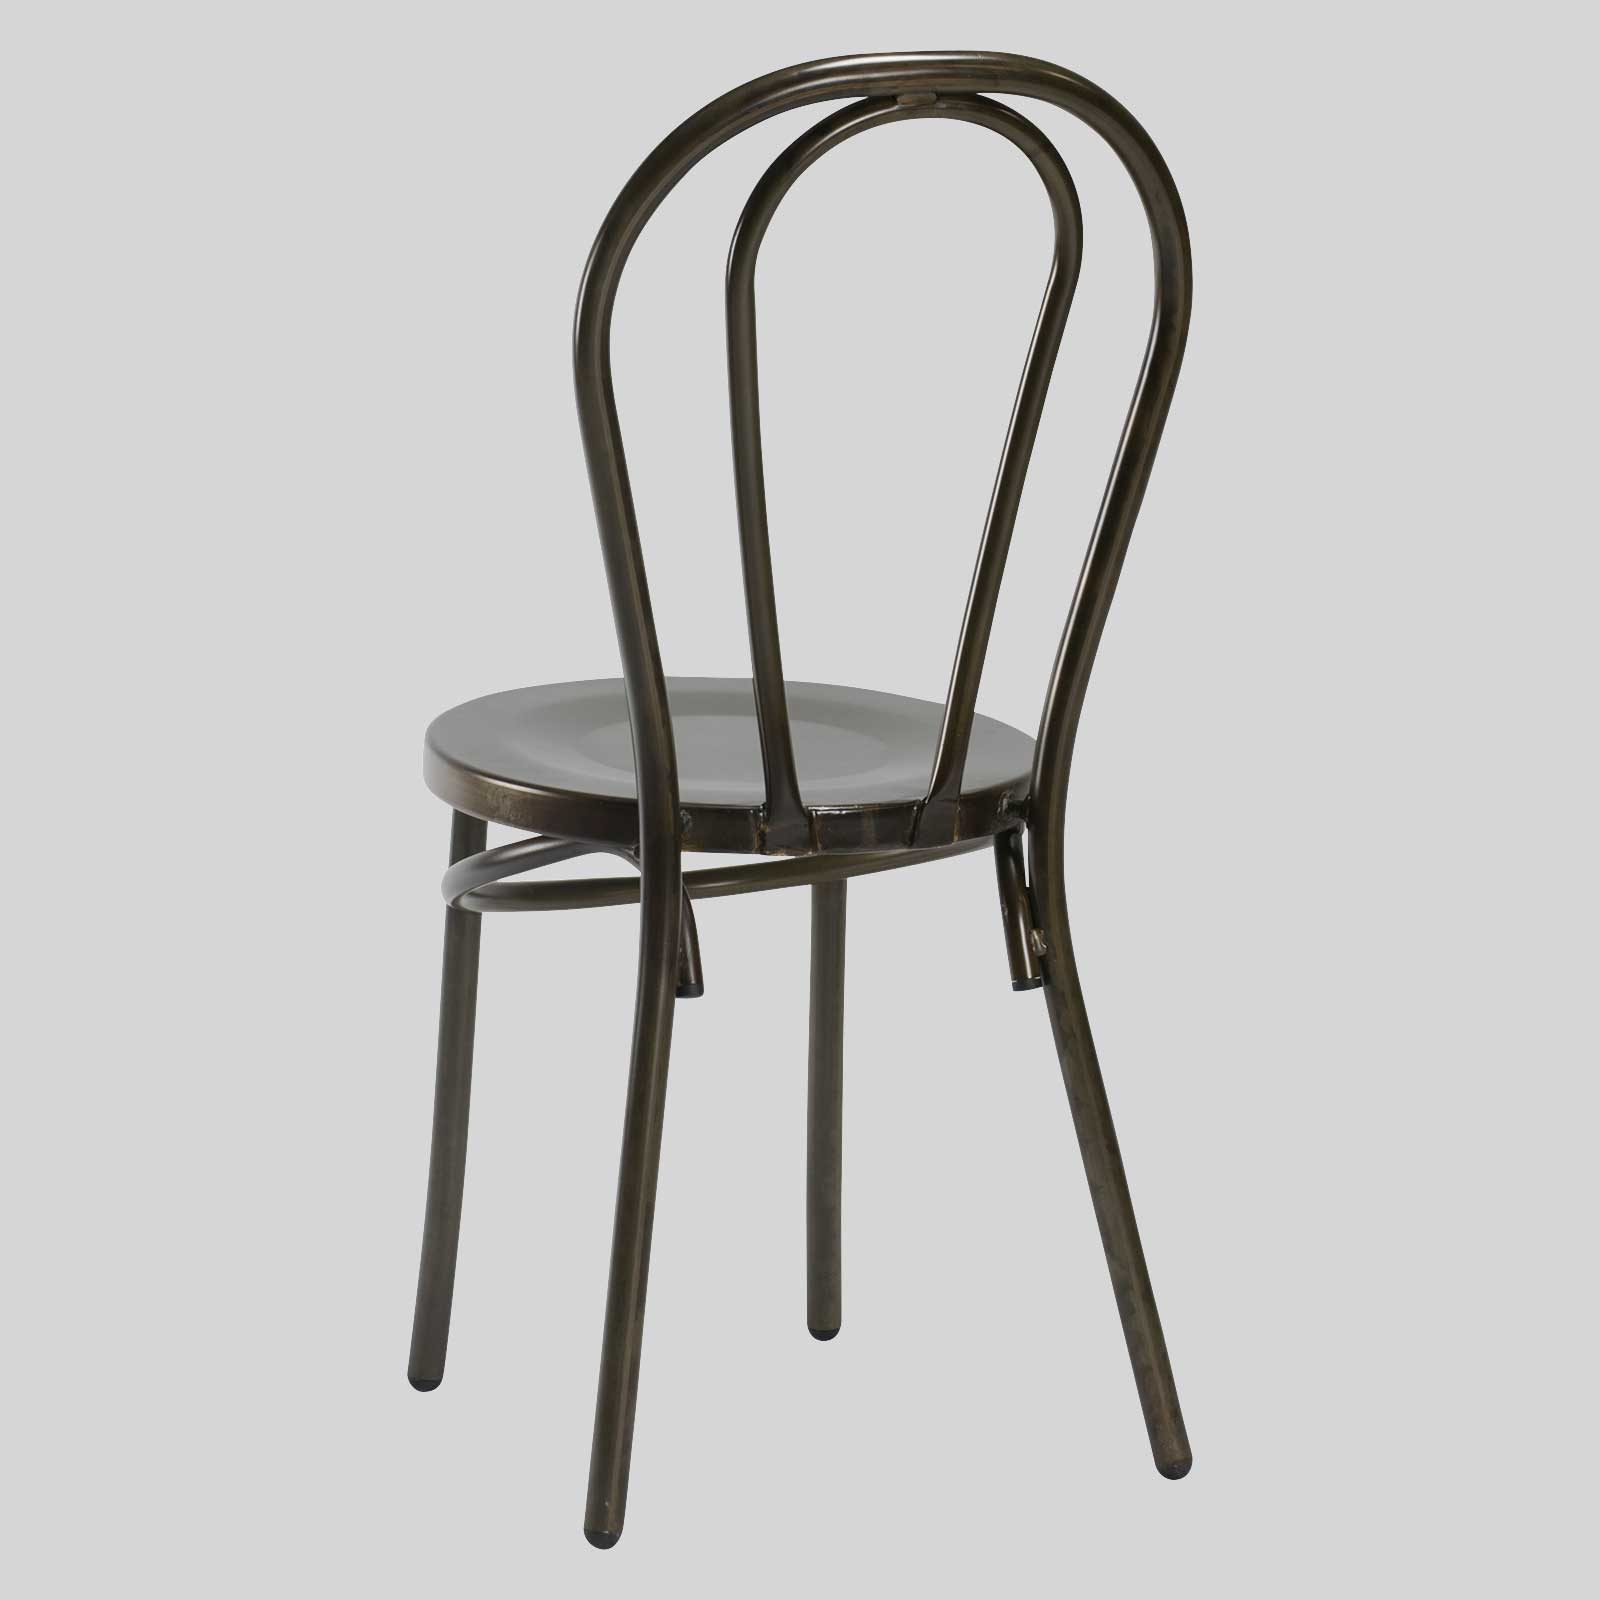 Home / Indoor Chairs / Classico Chair